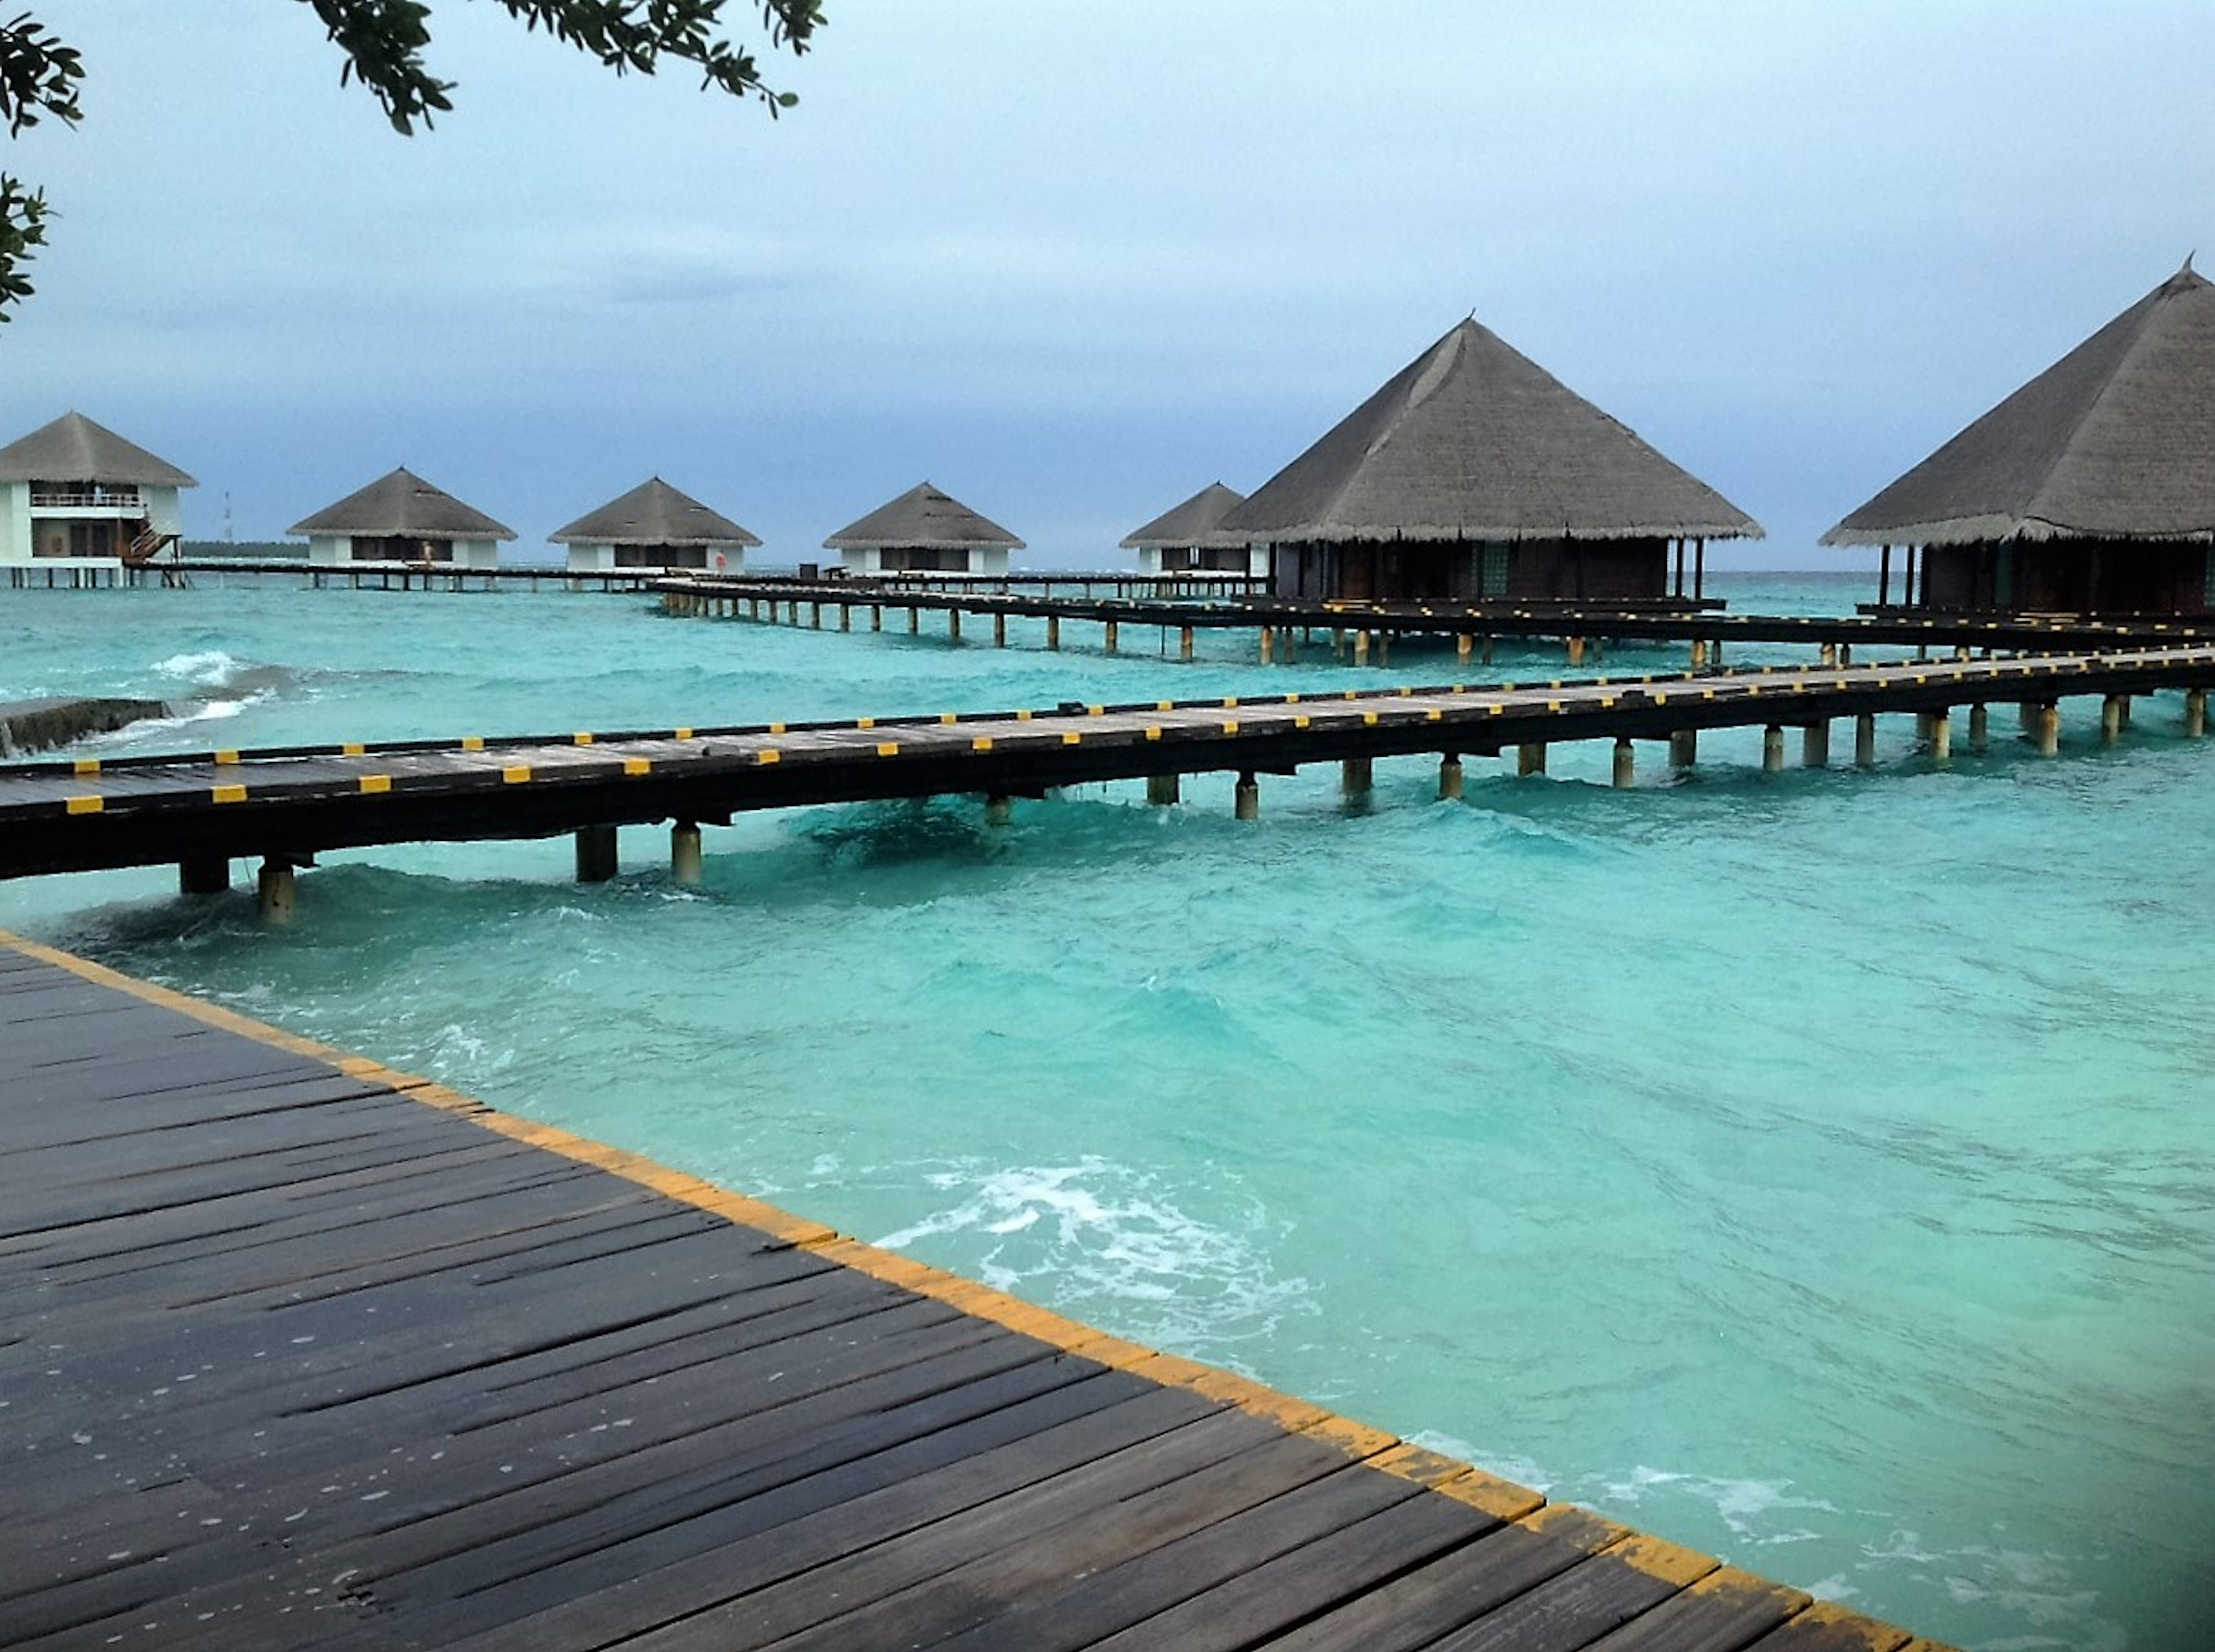 When to visit the Maldives